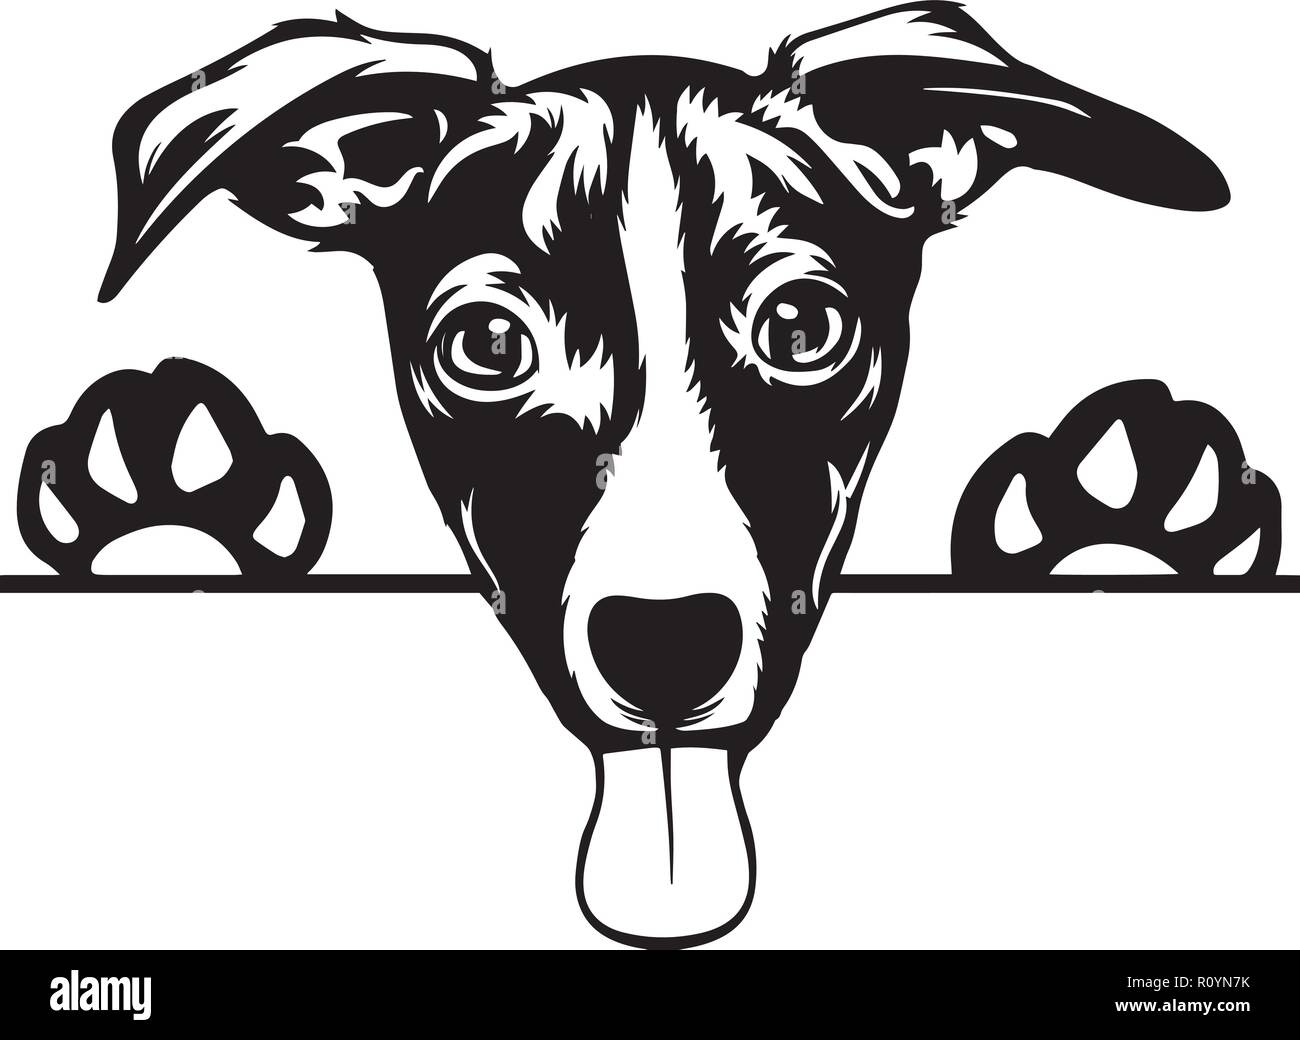 Jack Russell Terrier Dog Breed Head Isolated Pedigree Pet Portrait Smiling Happy Puppy Face Animal Cartoon Illustration Portrait Art Artwork Cute - Stock Image